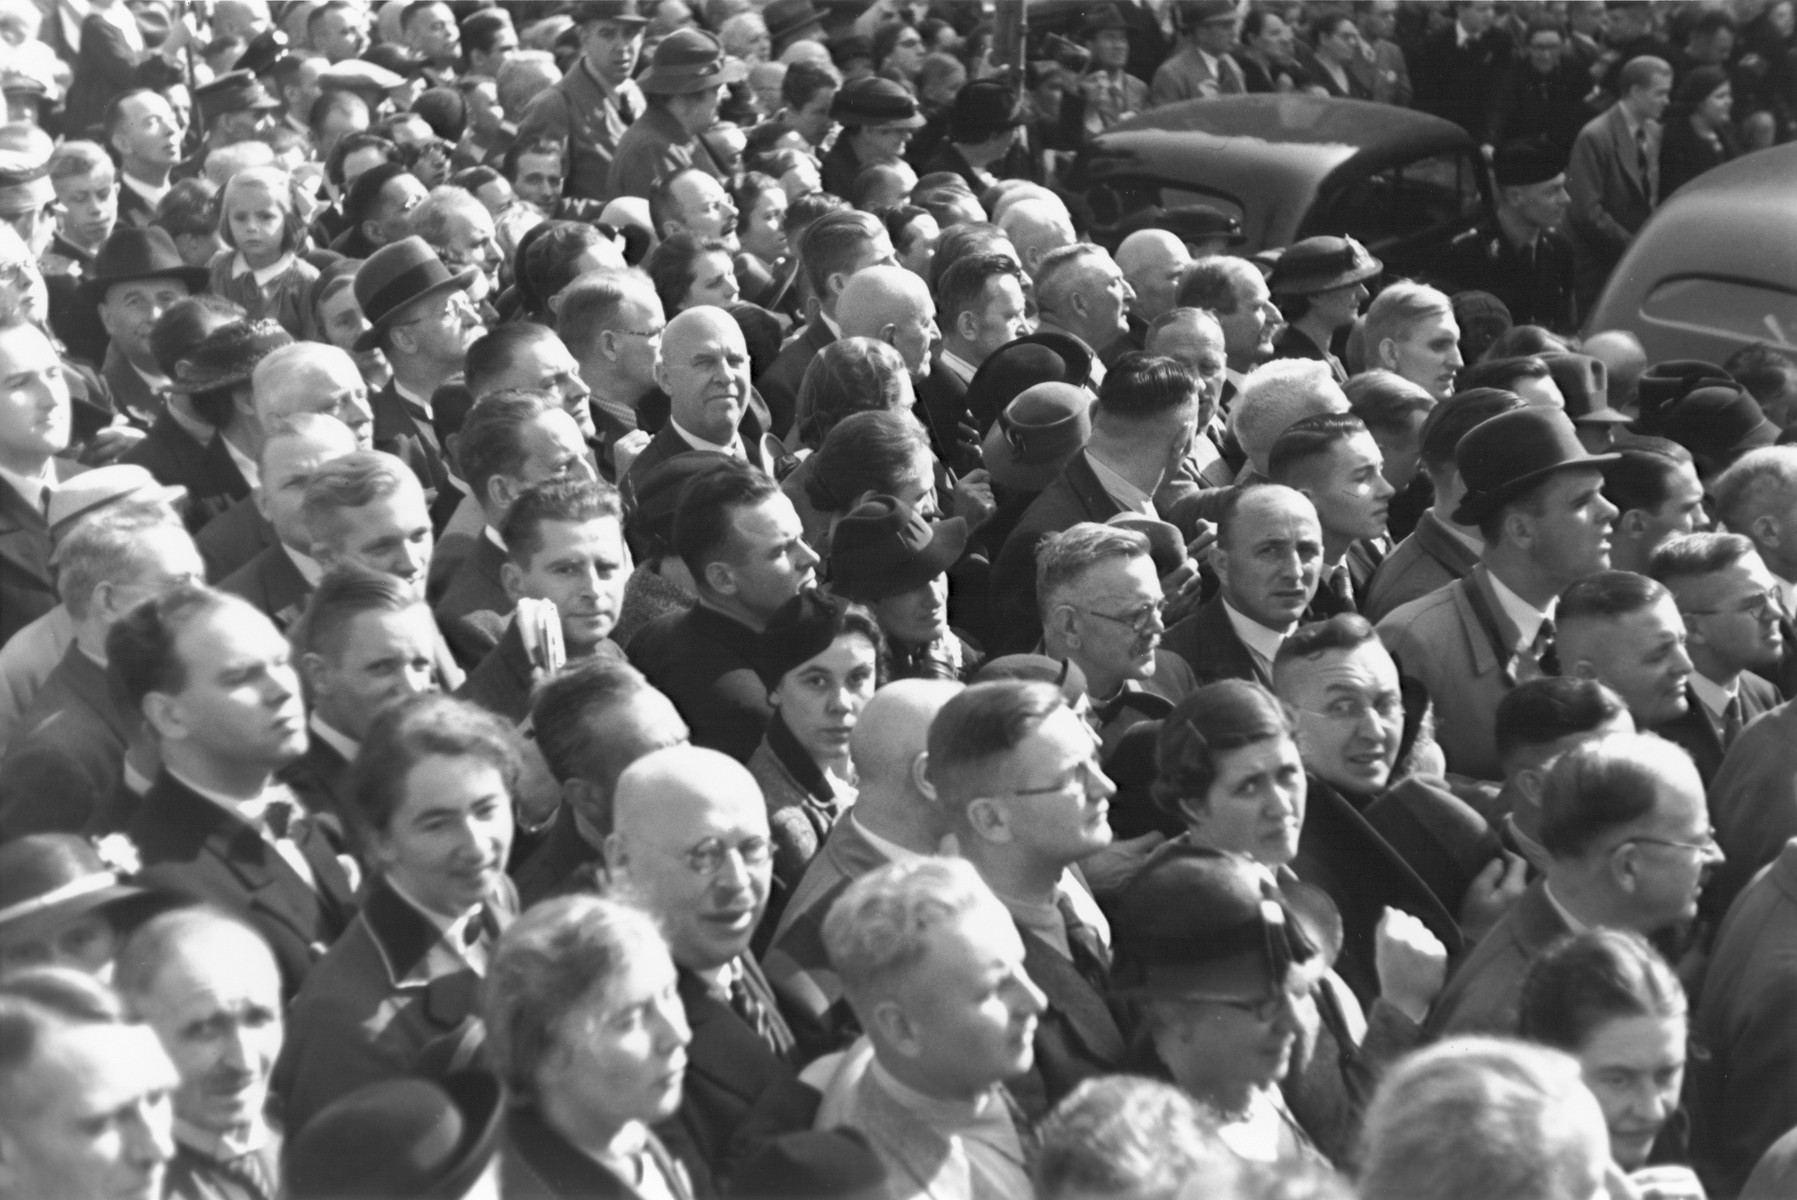 A large crowd of Germans attends a Nazi rally in Cologne.